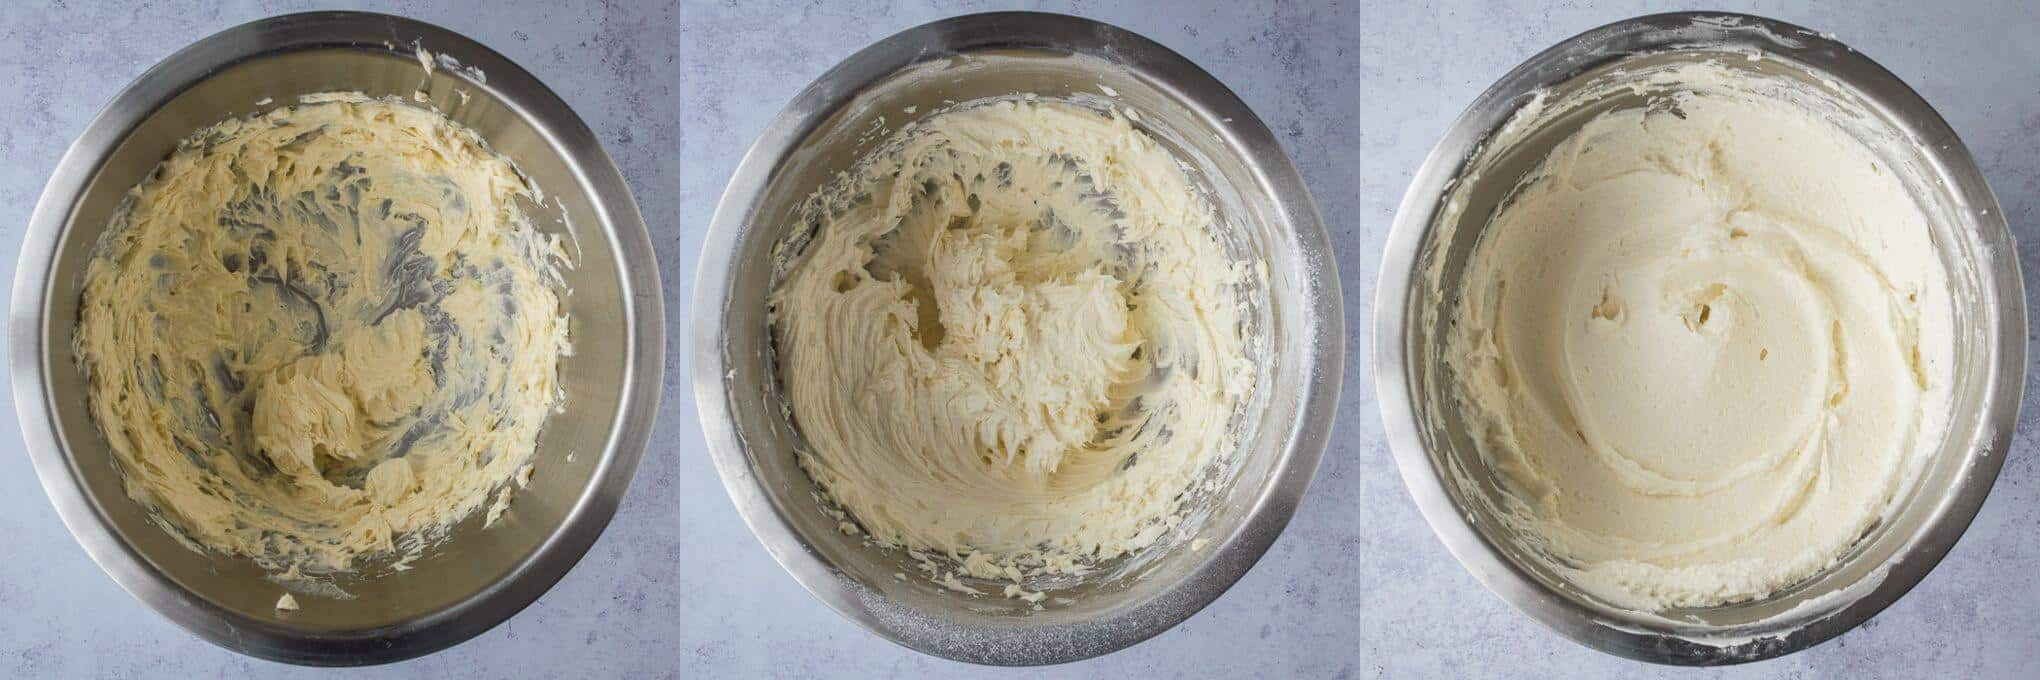 step 3 - making the buttercream.